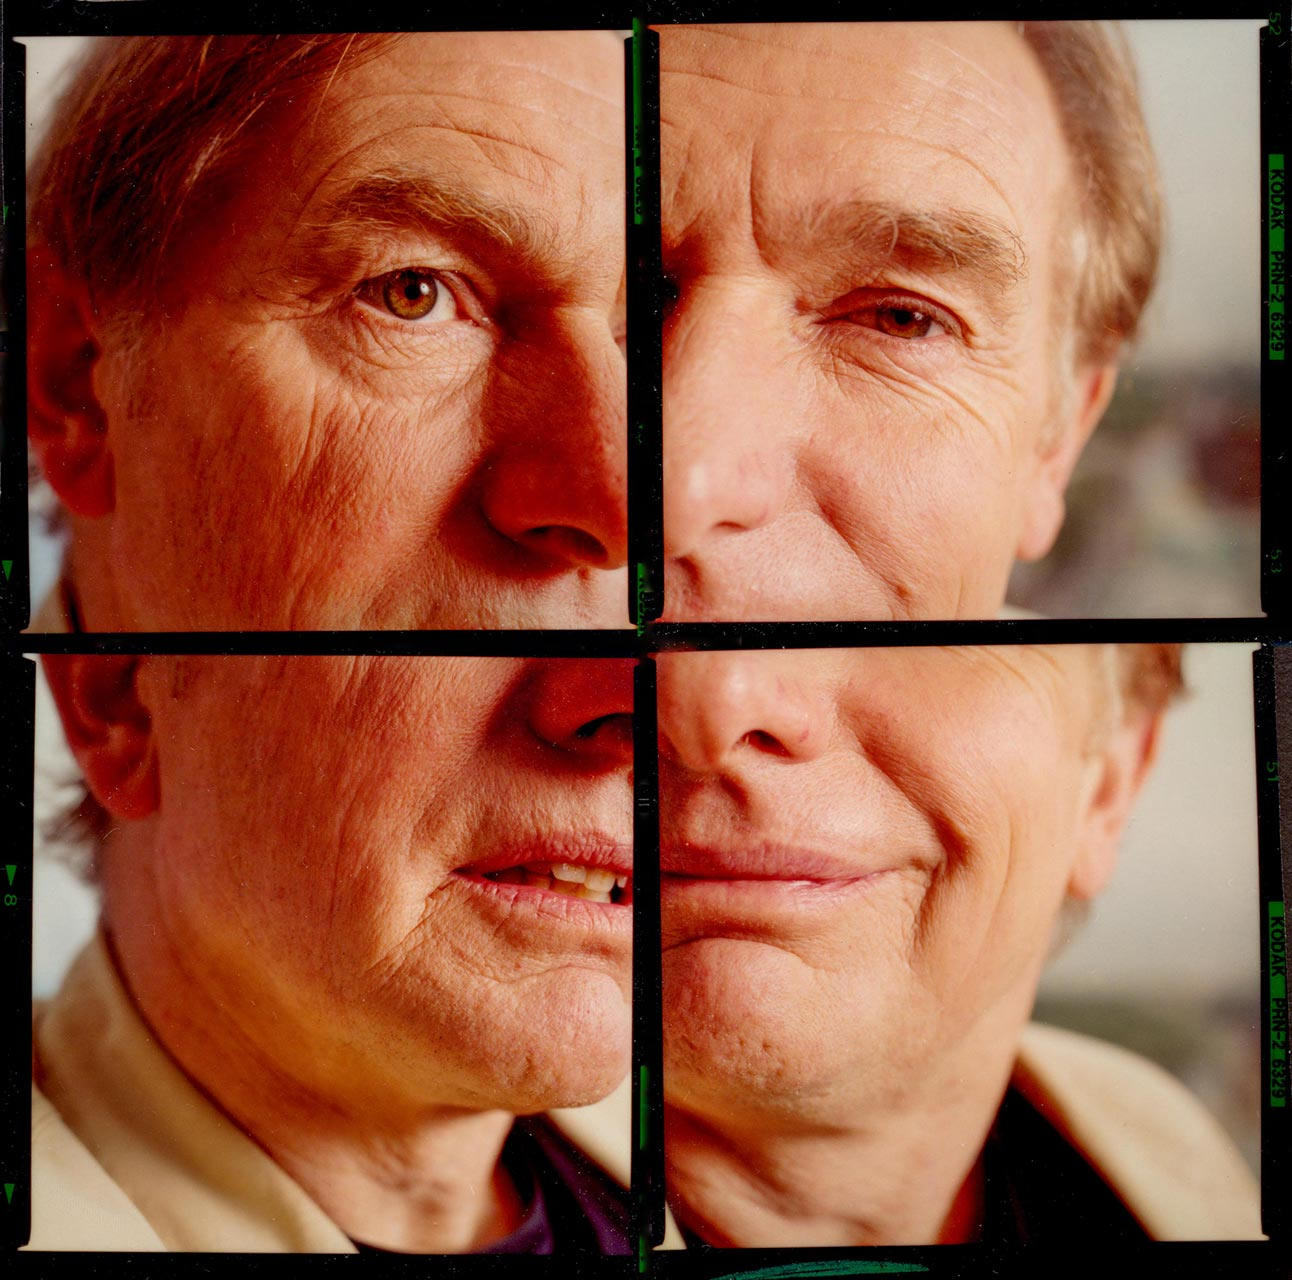 Australian Director Peter Weir makes the cover of the Globe & Mail's Entertainment section